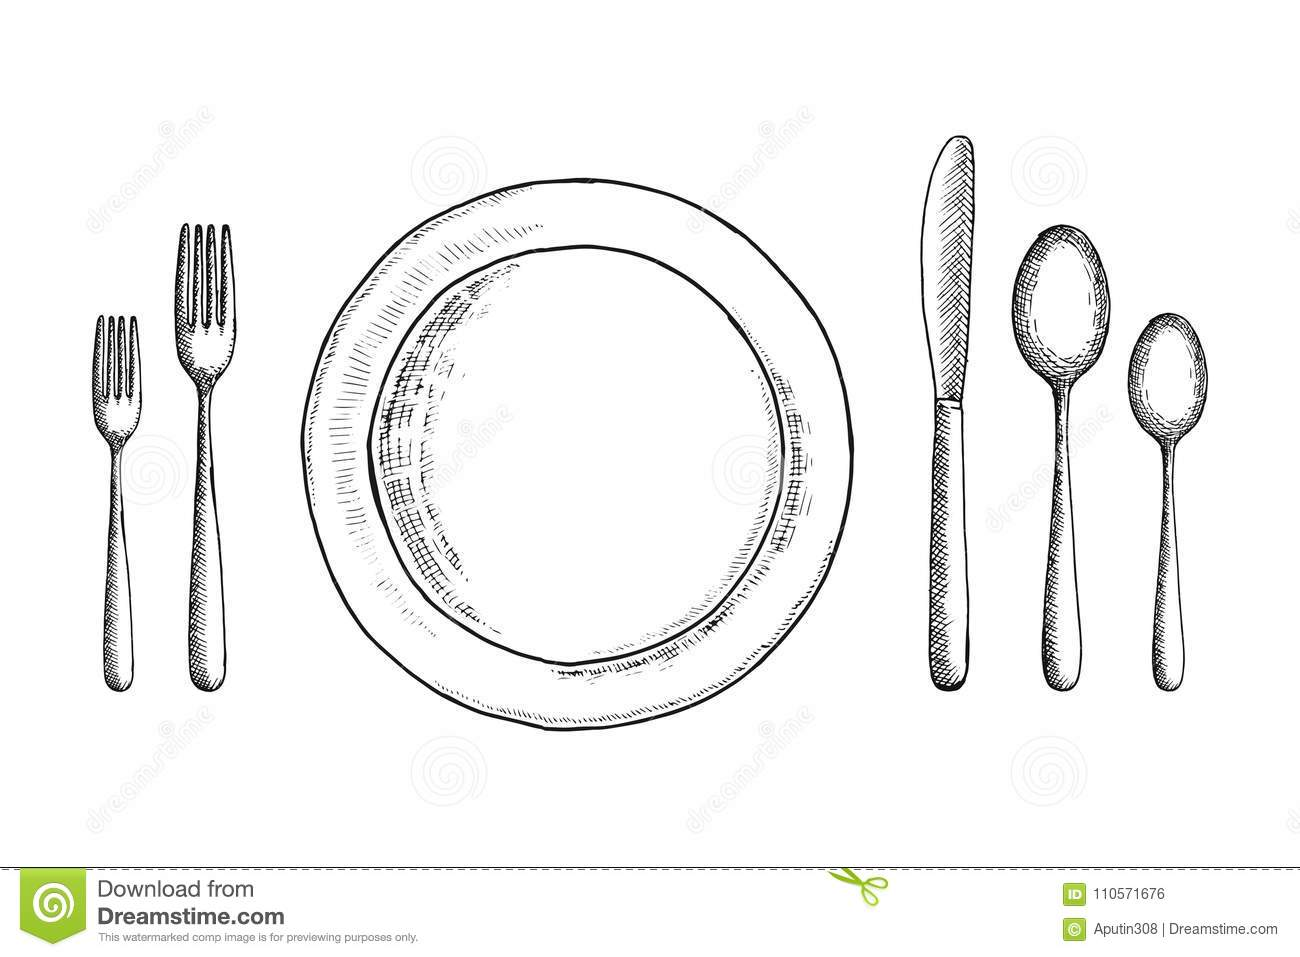 Cutlery vector sketch set. spoon fork and knife near the plate. table setting. Restaurant vintage.  sc 1 st  Dreamstime.com & Cutlery Vector Sketch Set. Spoon Fork And Knife Near The Plate ...